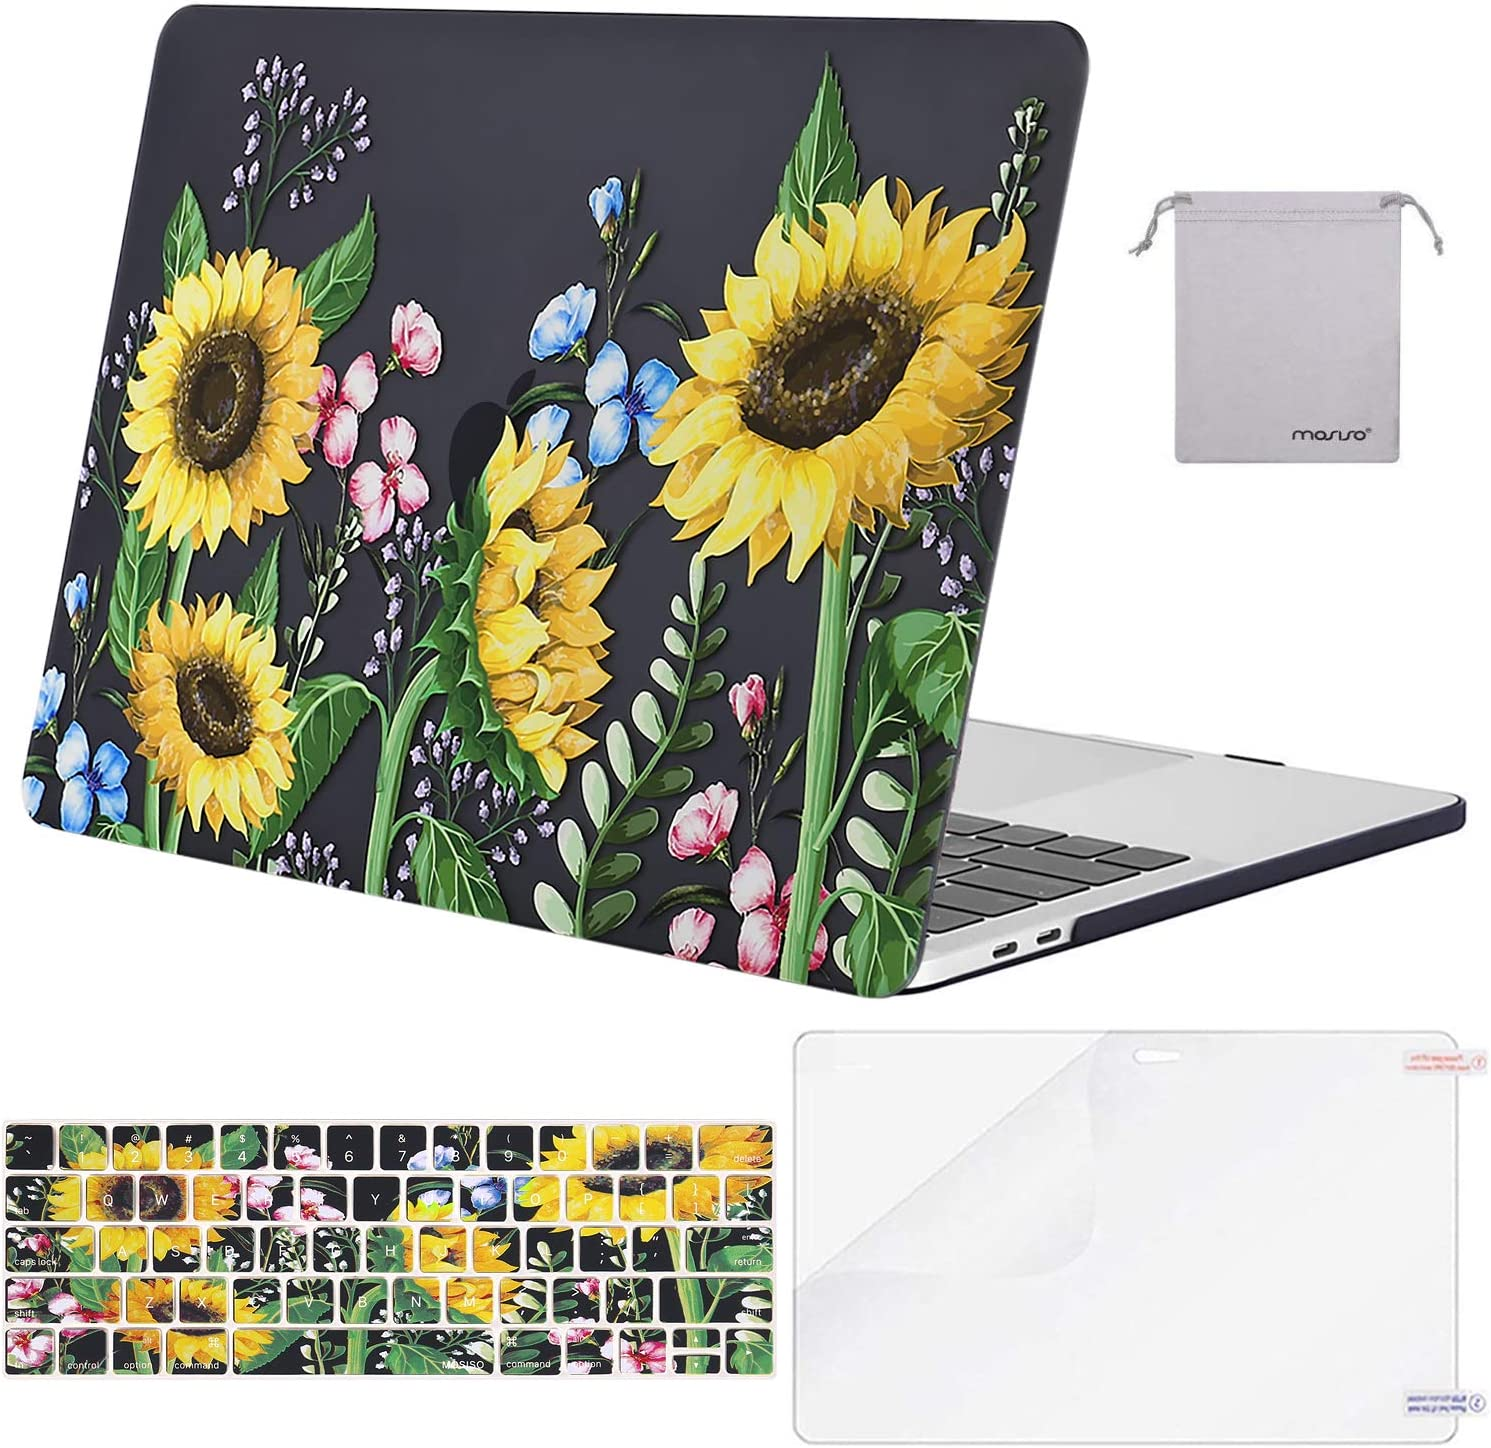 MOSISO Compatible with MacBook Pro 13 inch Case 2019 2018 2017 2016 Release A2159 A1989 A1706 A1708, Plastic Pattern Hard Shell Case&Keyboard Cover Skin&Screen Protector&Storage Bag, Sun Plant